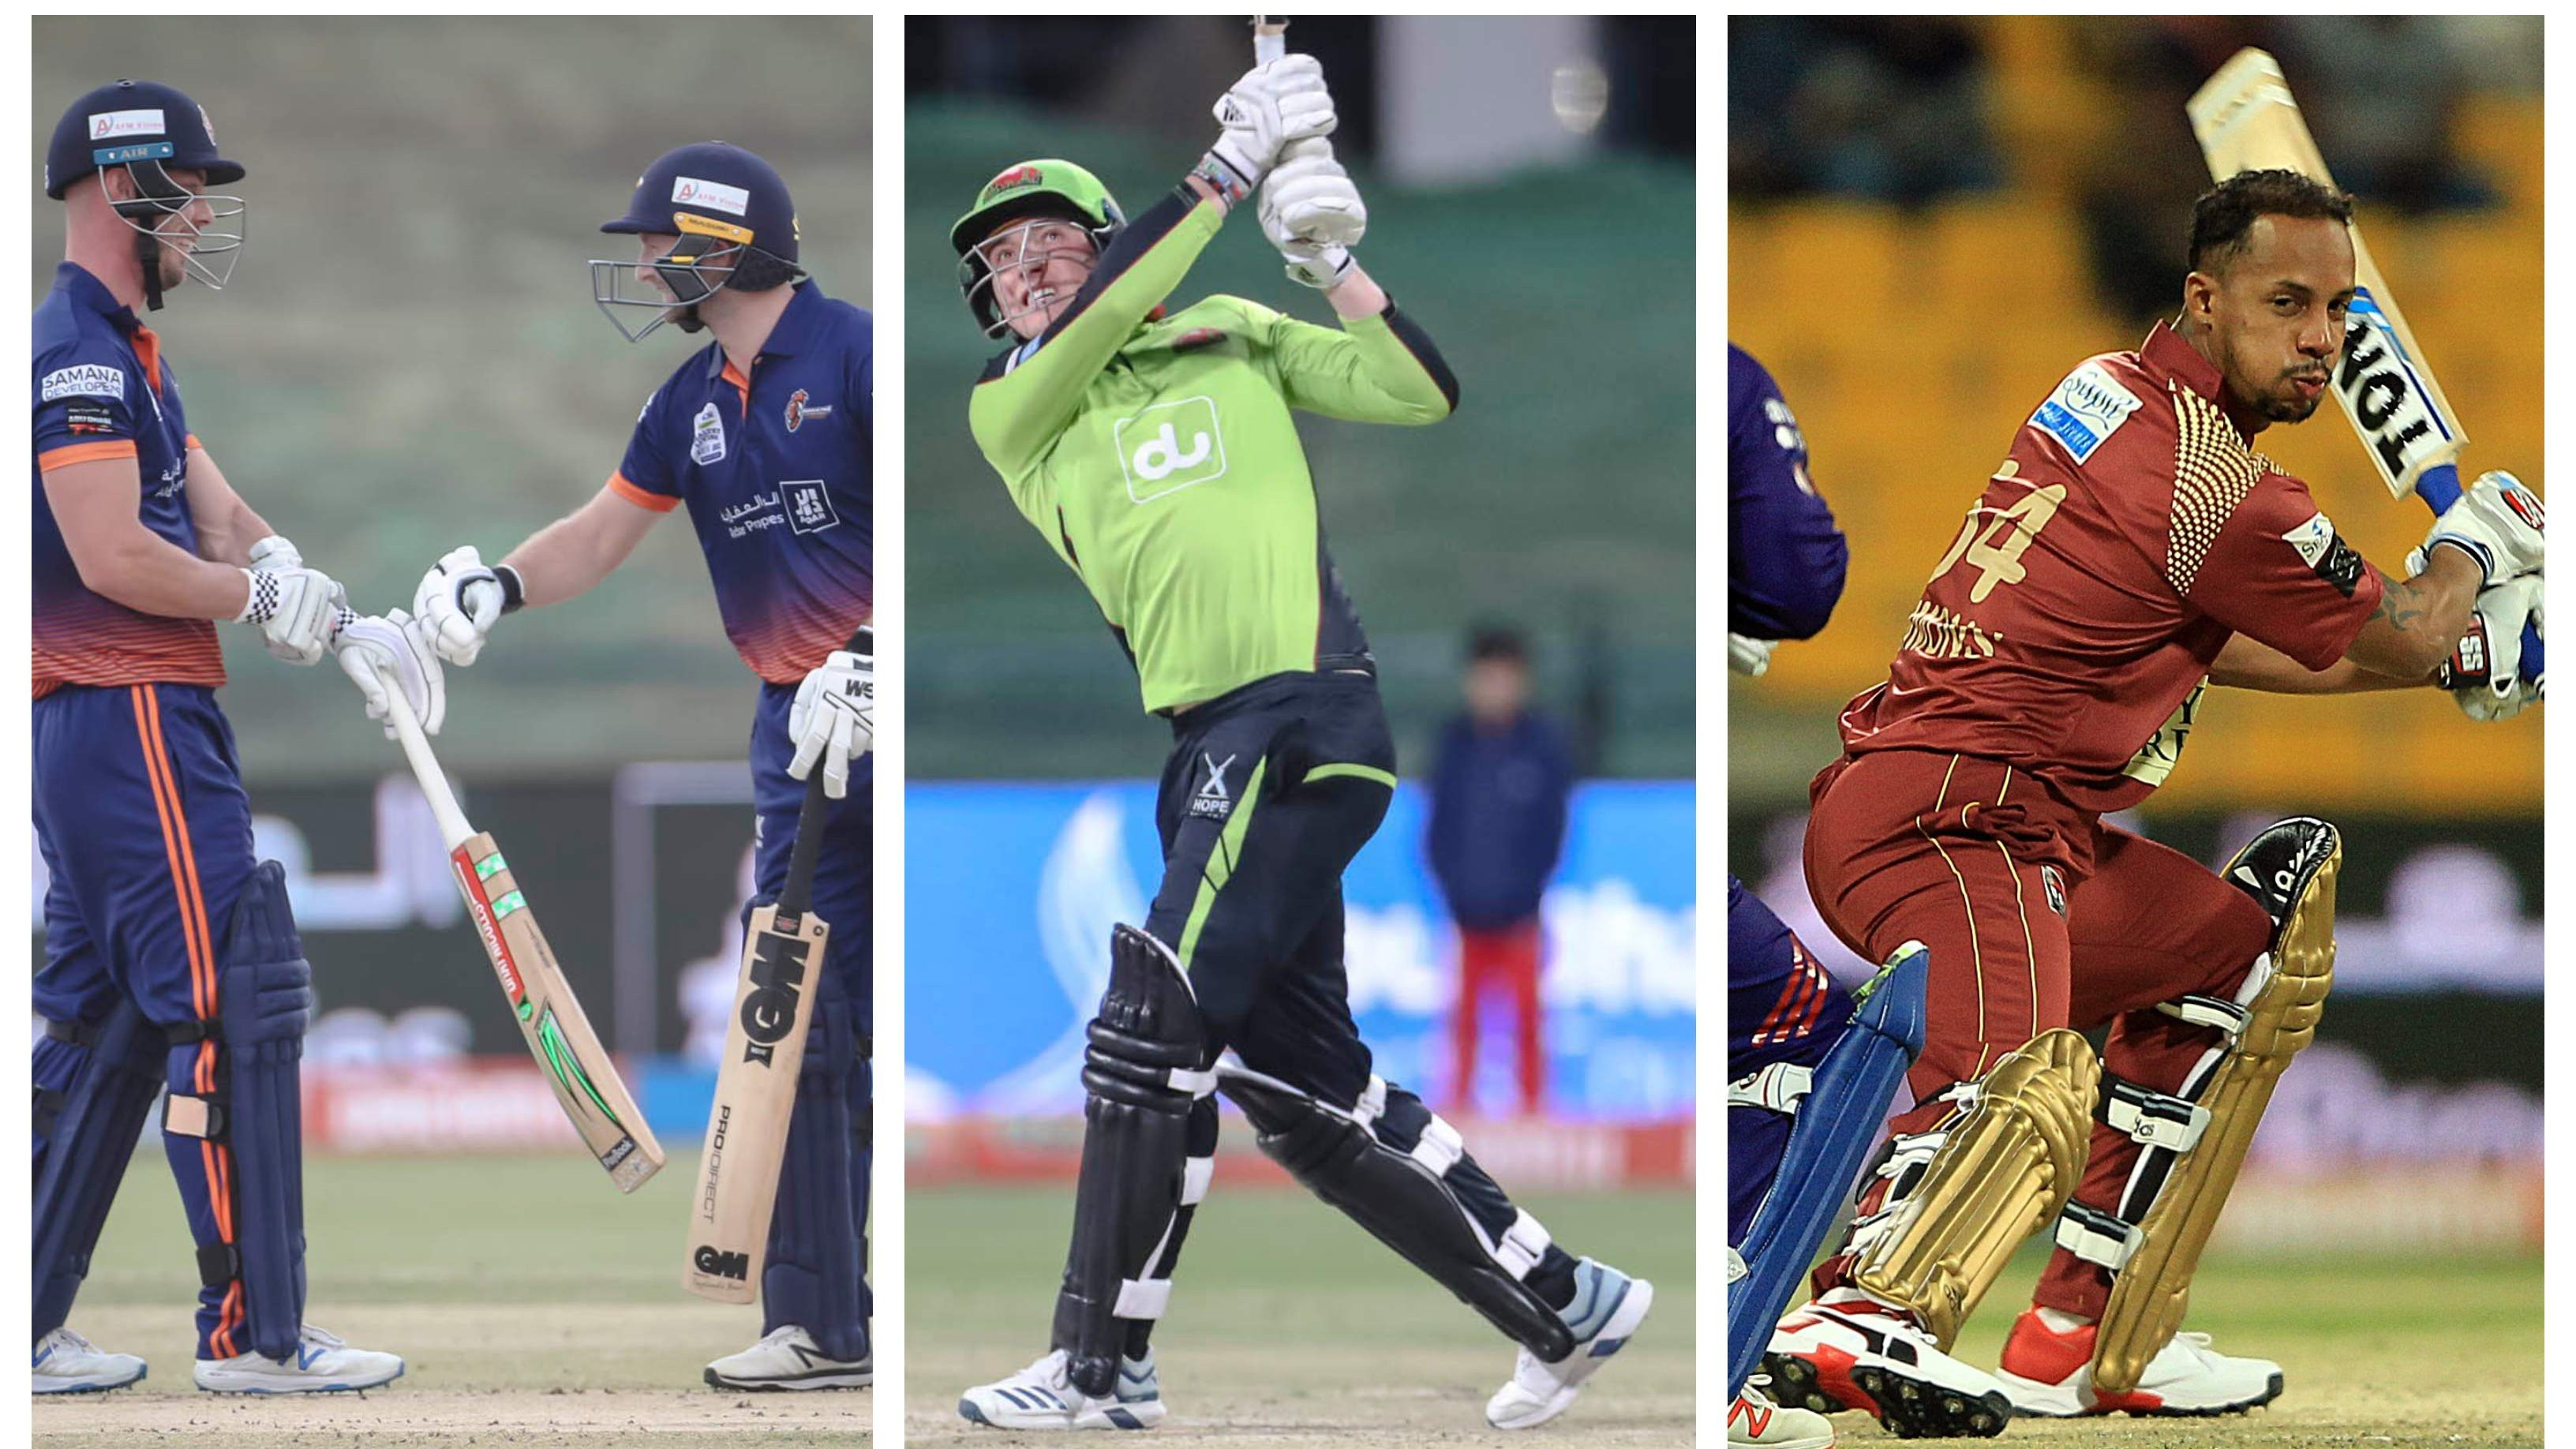 T10 League 2019: Arabians defeat Bulls by 30 runs; Qalandars beat Tuskers by 32 runs; Gladiators lost to Warriors by 10 runs